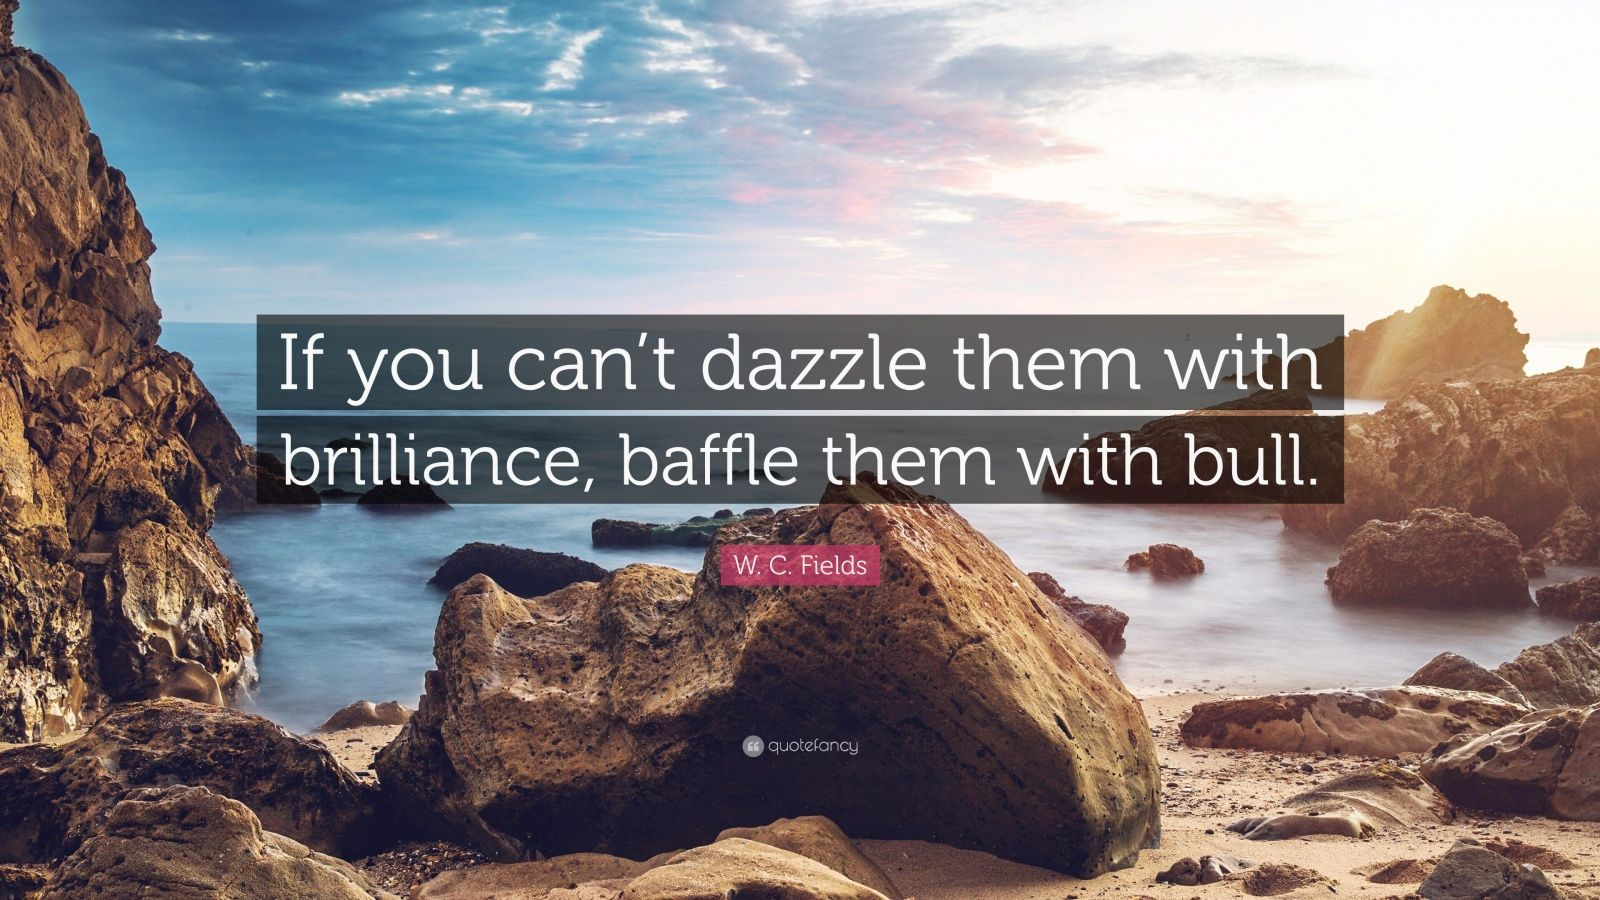 """W. C. Fields Quote: """"If you can't dazzle them with brilliance, baffle them with bull."""""""